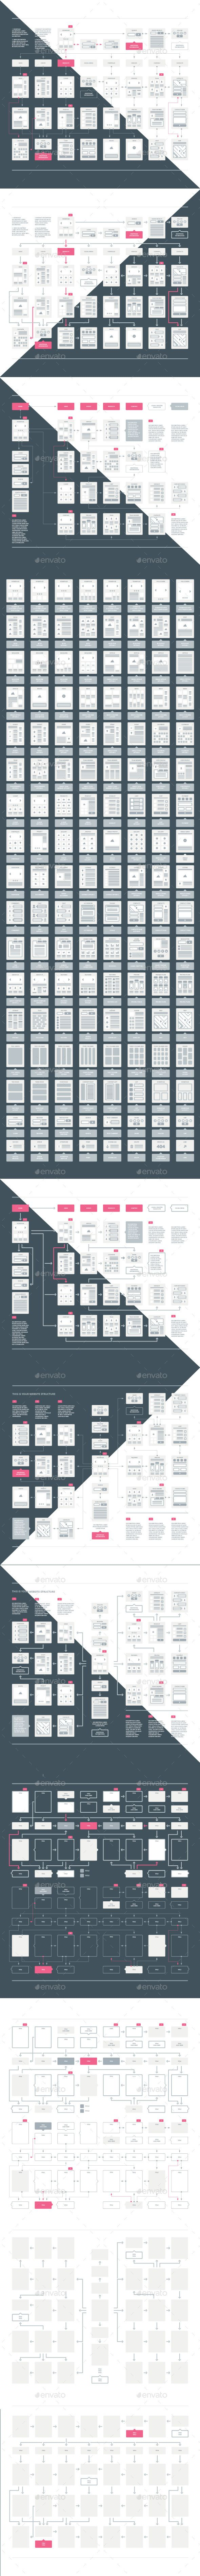 Web Sitemap Userflow & UX Kit Template Vector AI Illustrator. Download here…